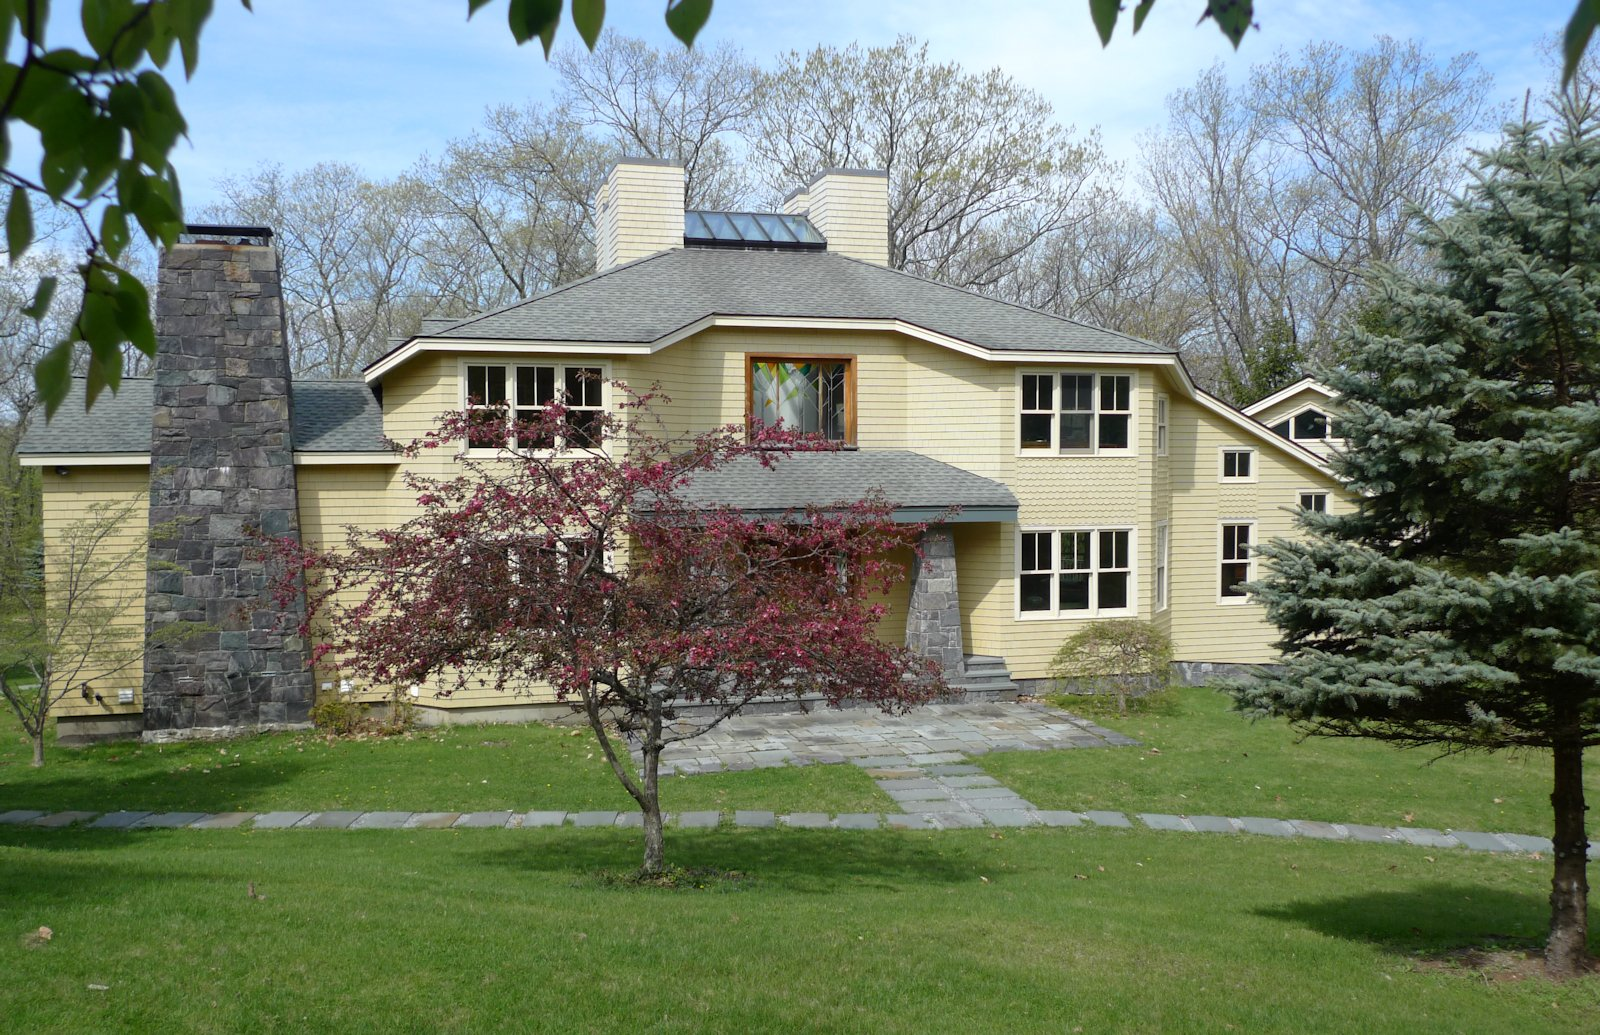 Maison unifamiliale pour l Vente à Killearn Road Millbrook, New York, 12545 États-Unis